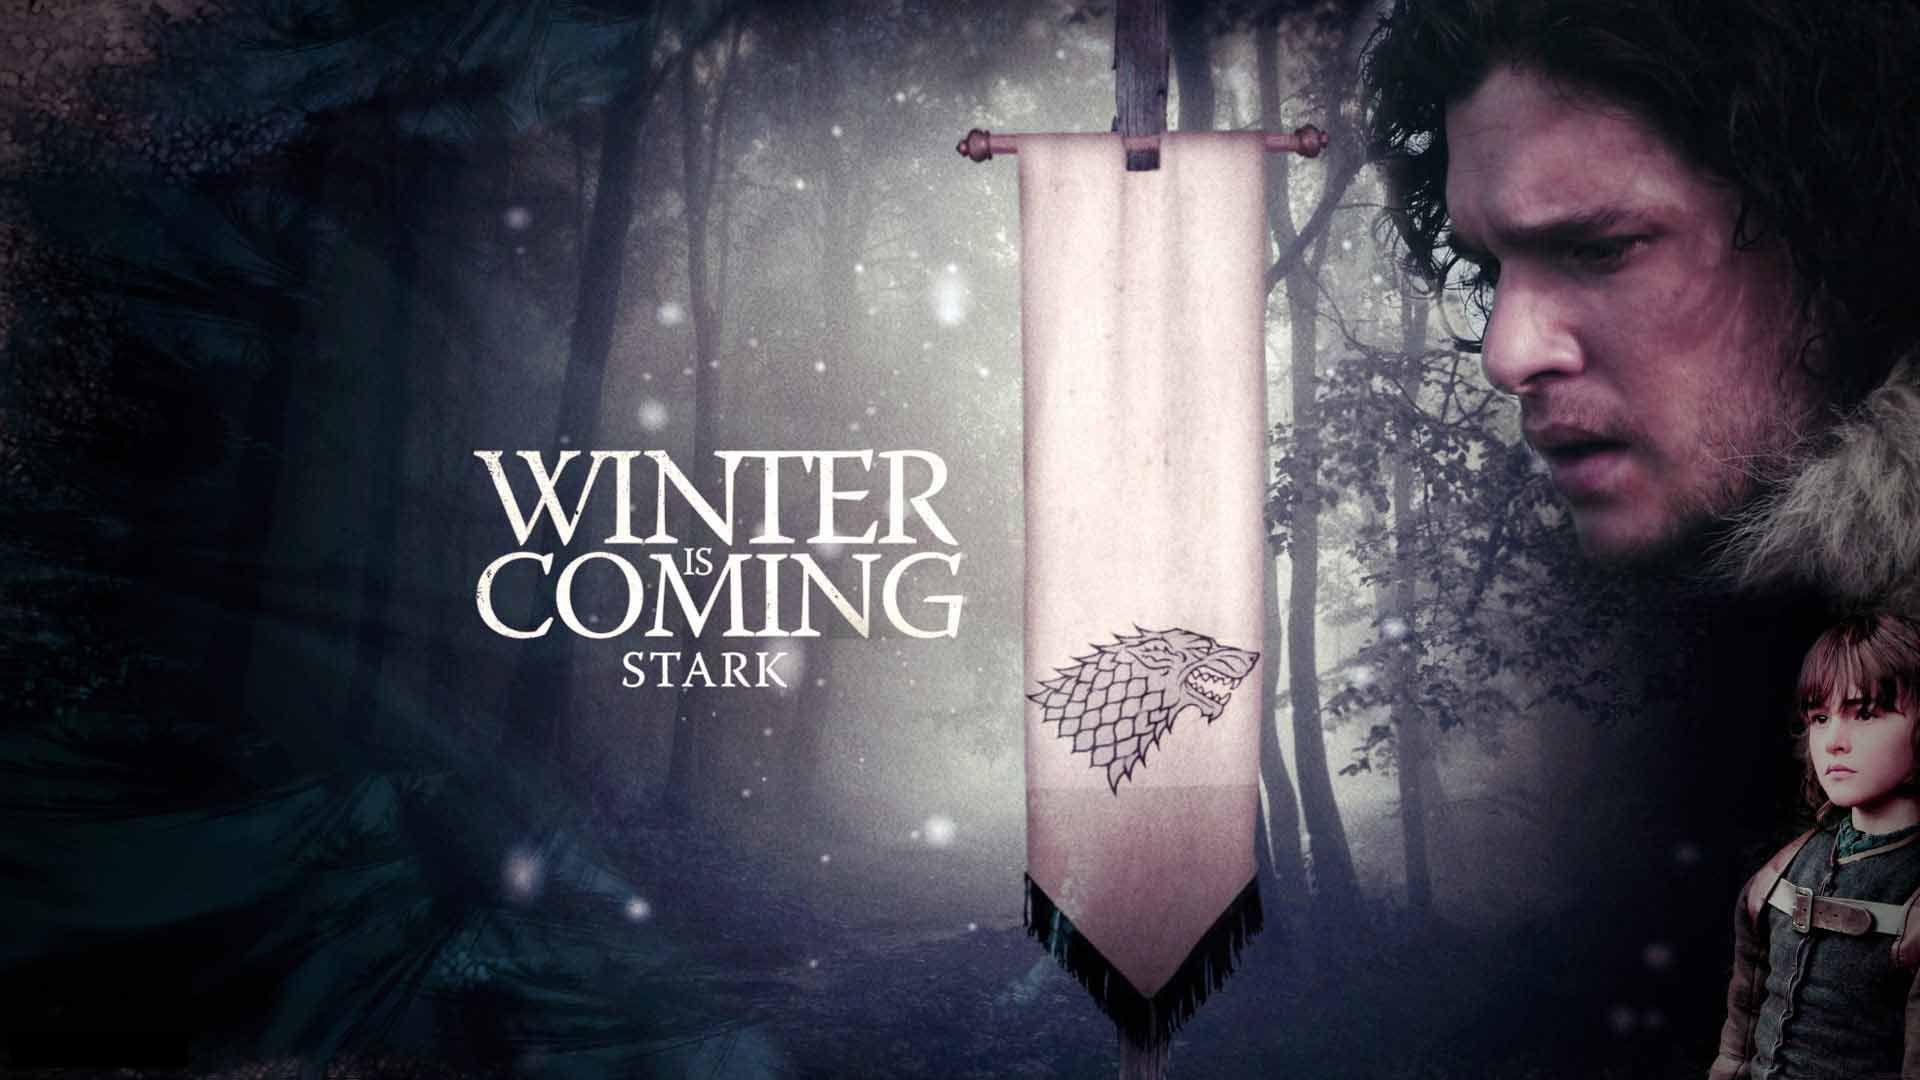 game of thrones season 7 wallpaper, game of thrones season 7 wallpaper 1920x1080